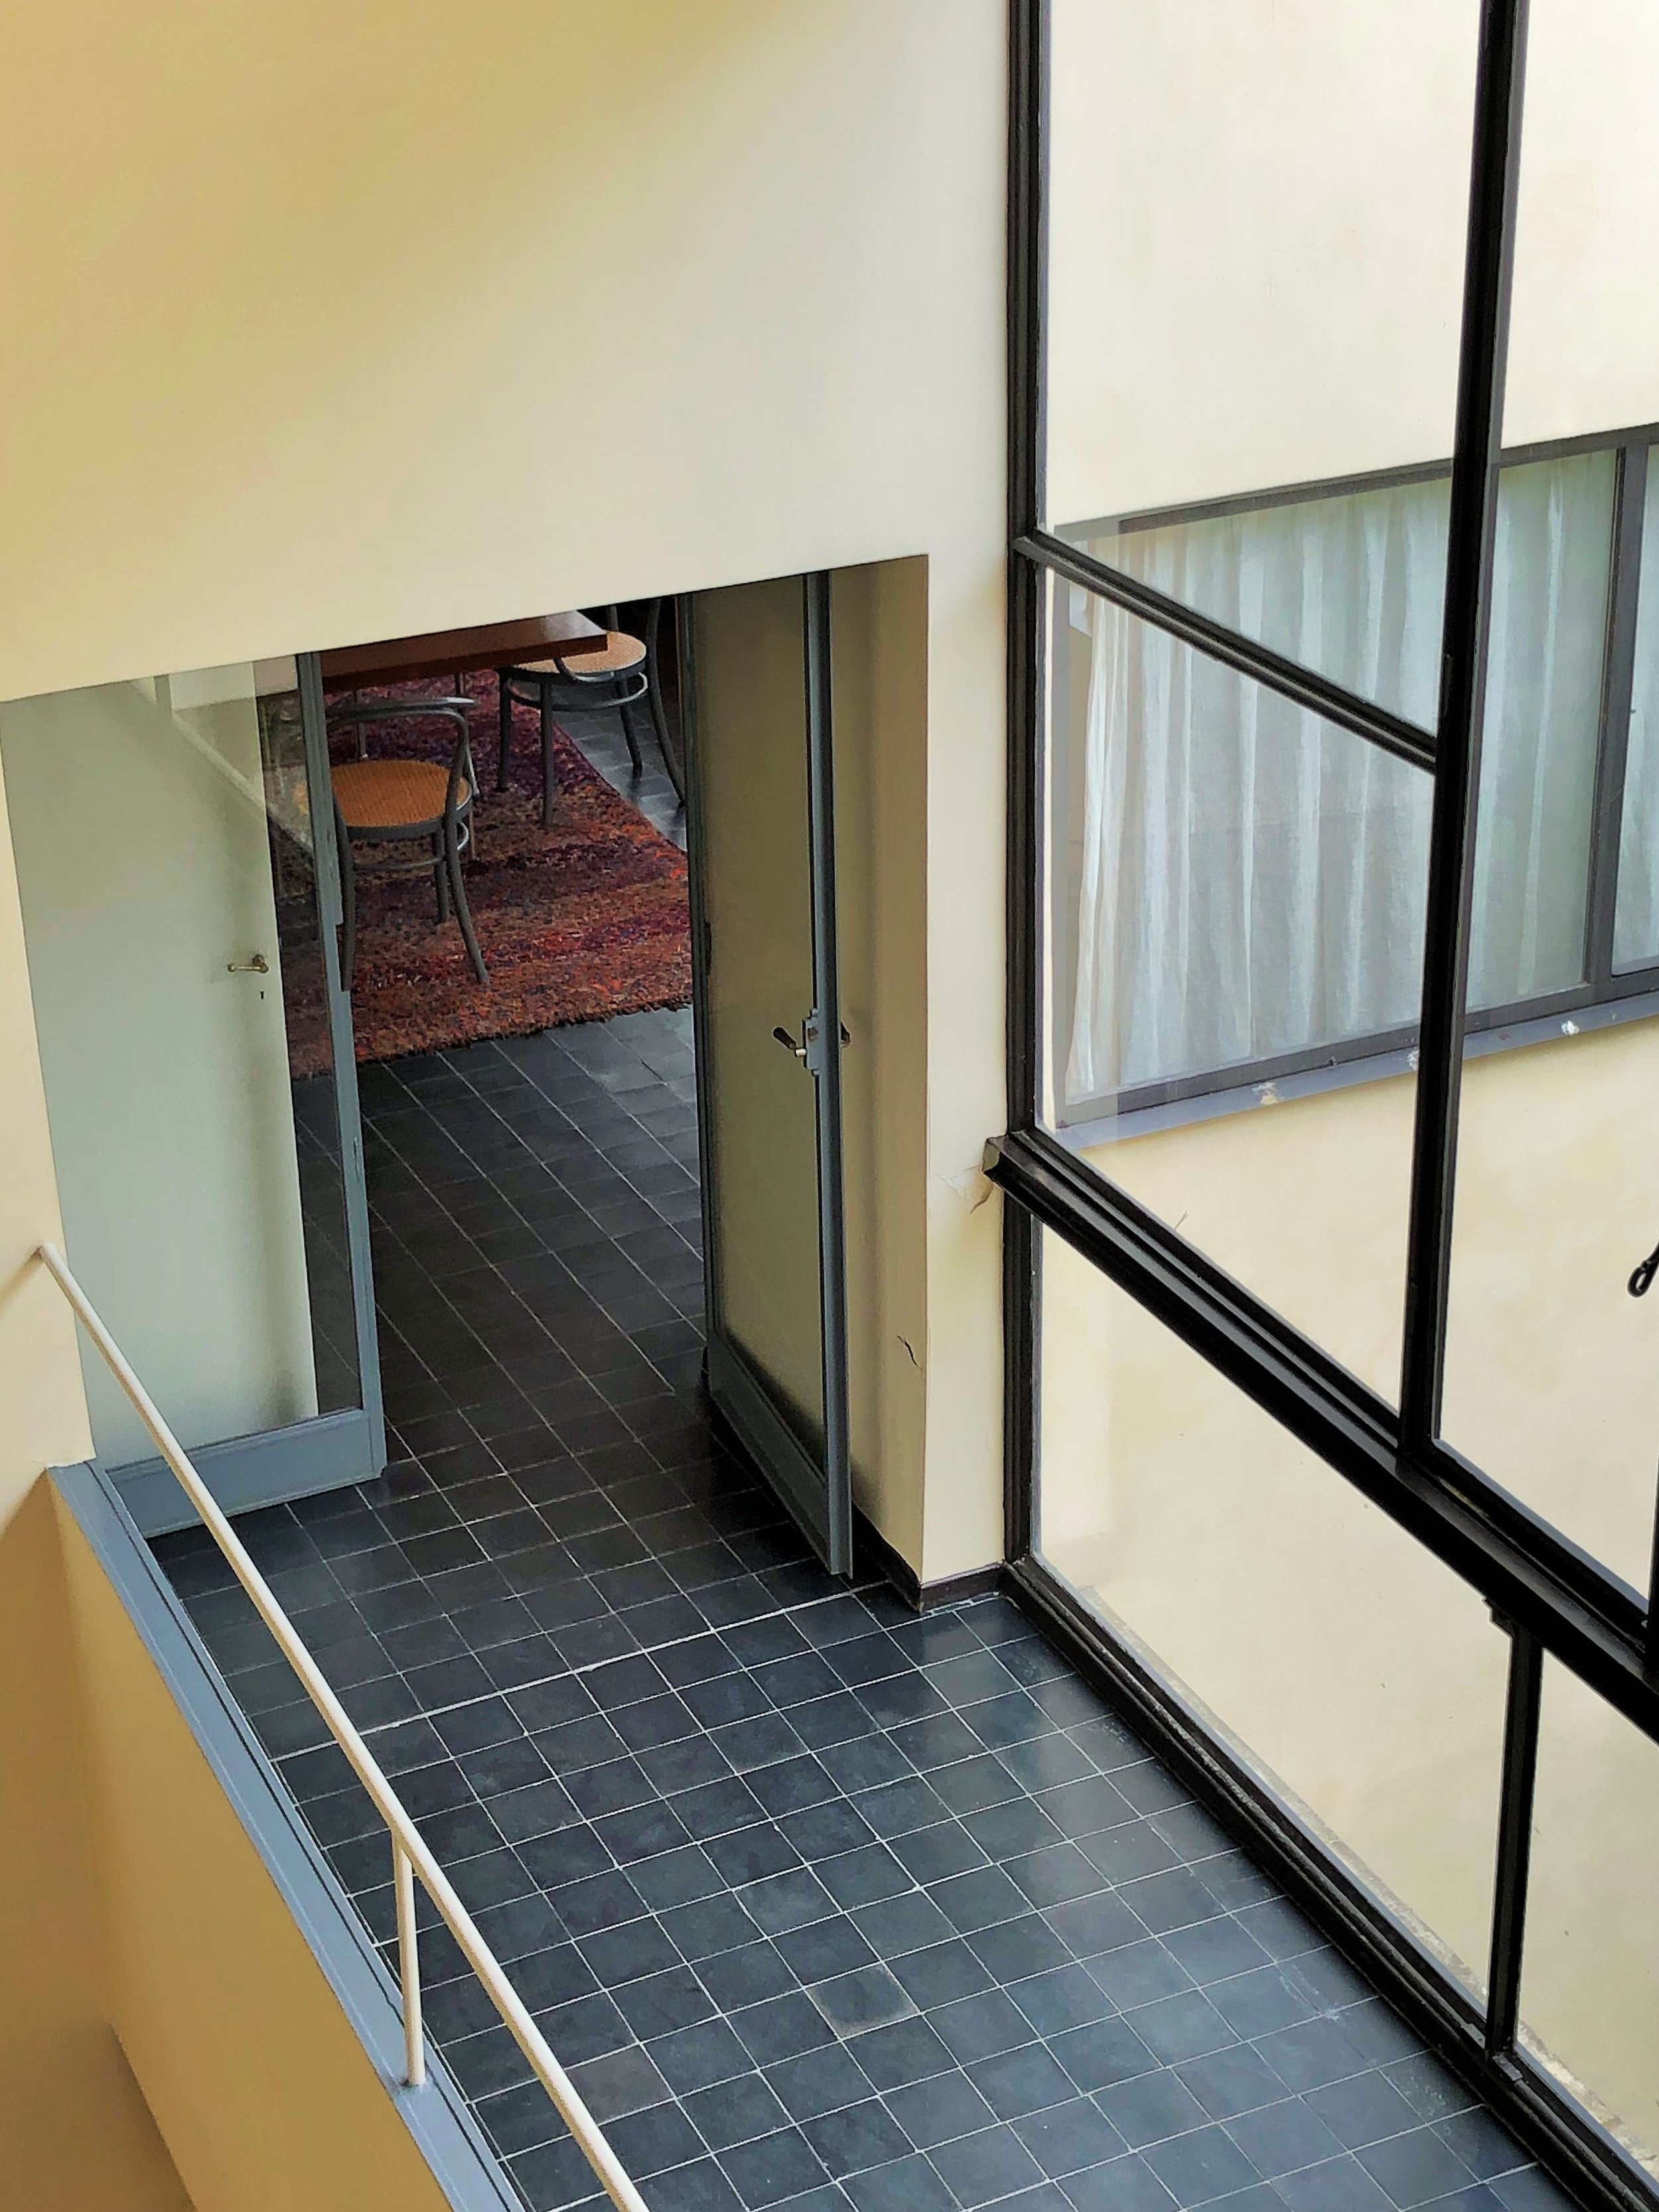 The hallway, looking into the dining room, Maison La Roche, by Le Corbusier Photograph ©The London List